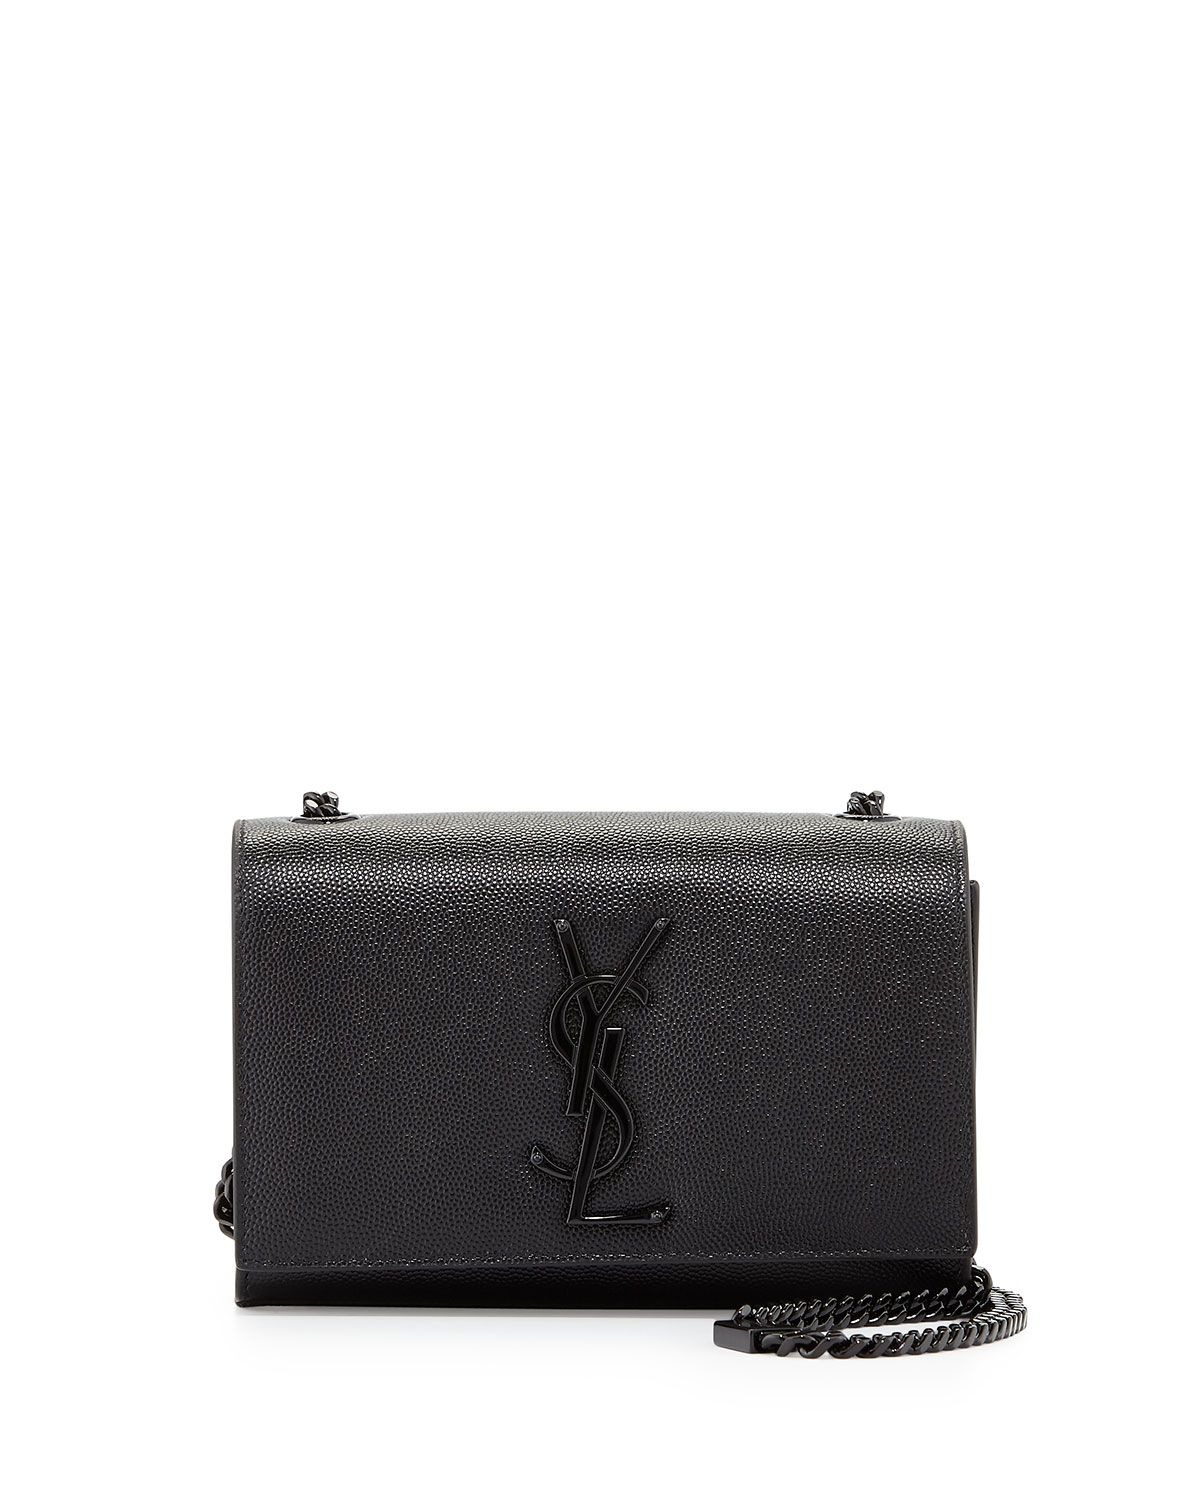 01769bcbca37 Yves Saint Laurent Kate Monogram Small Shoulder Bag